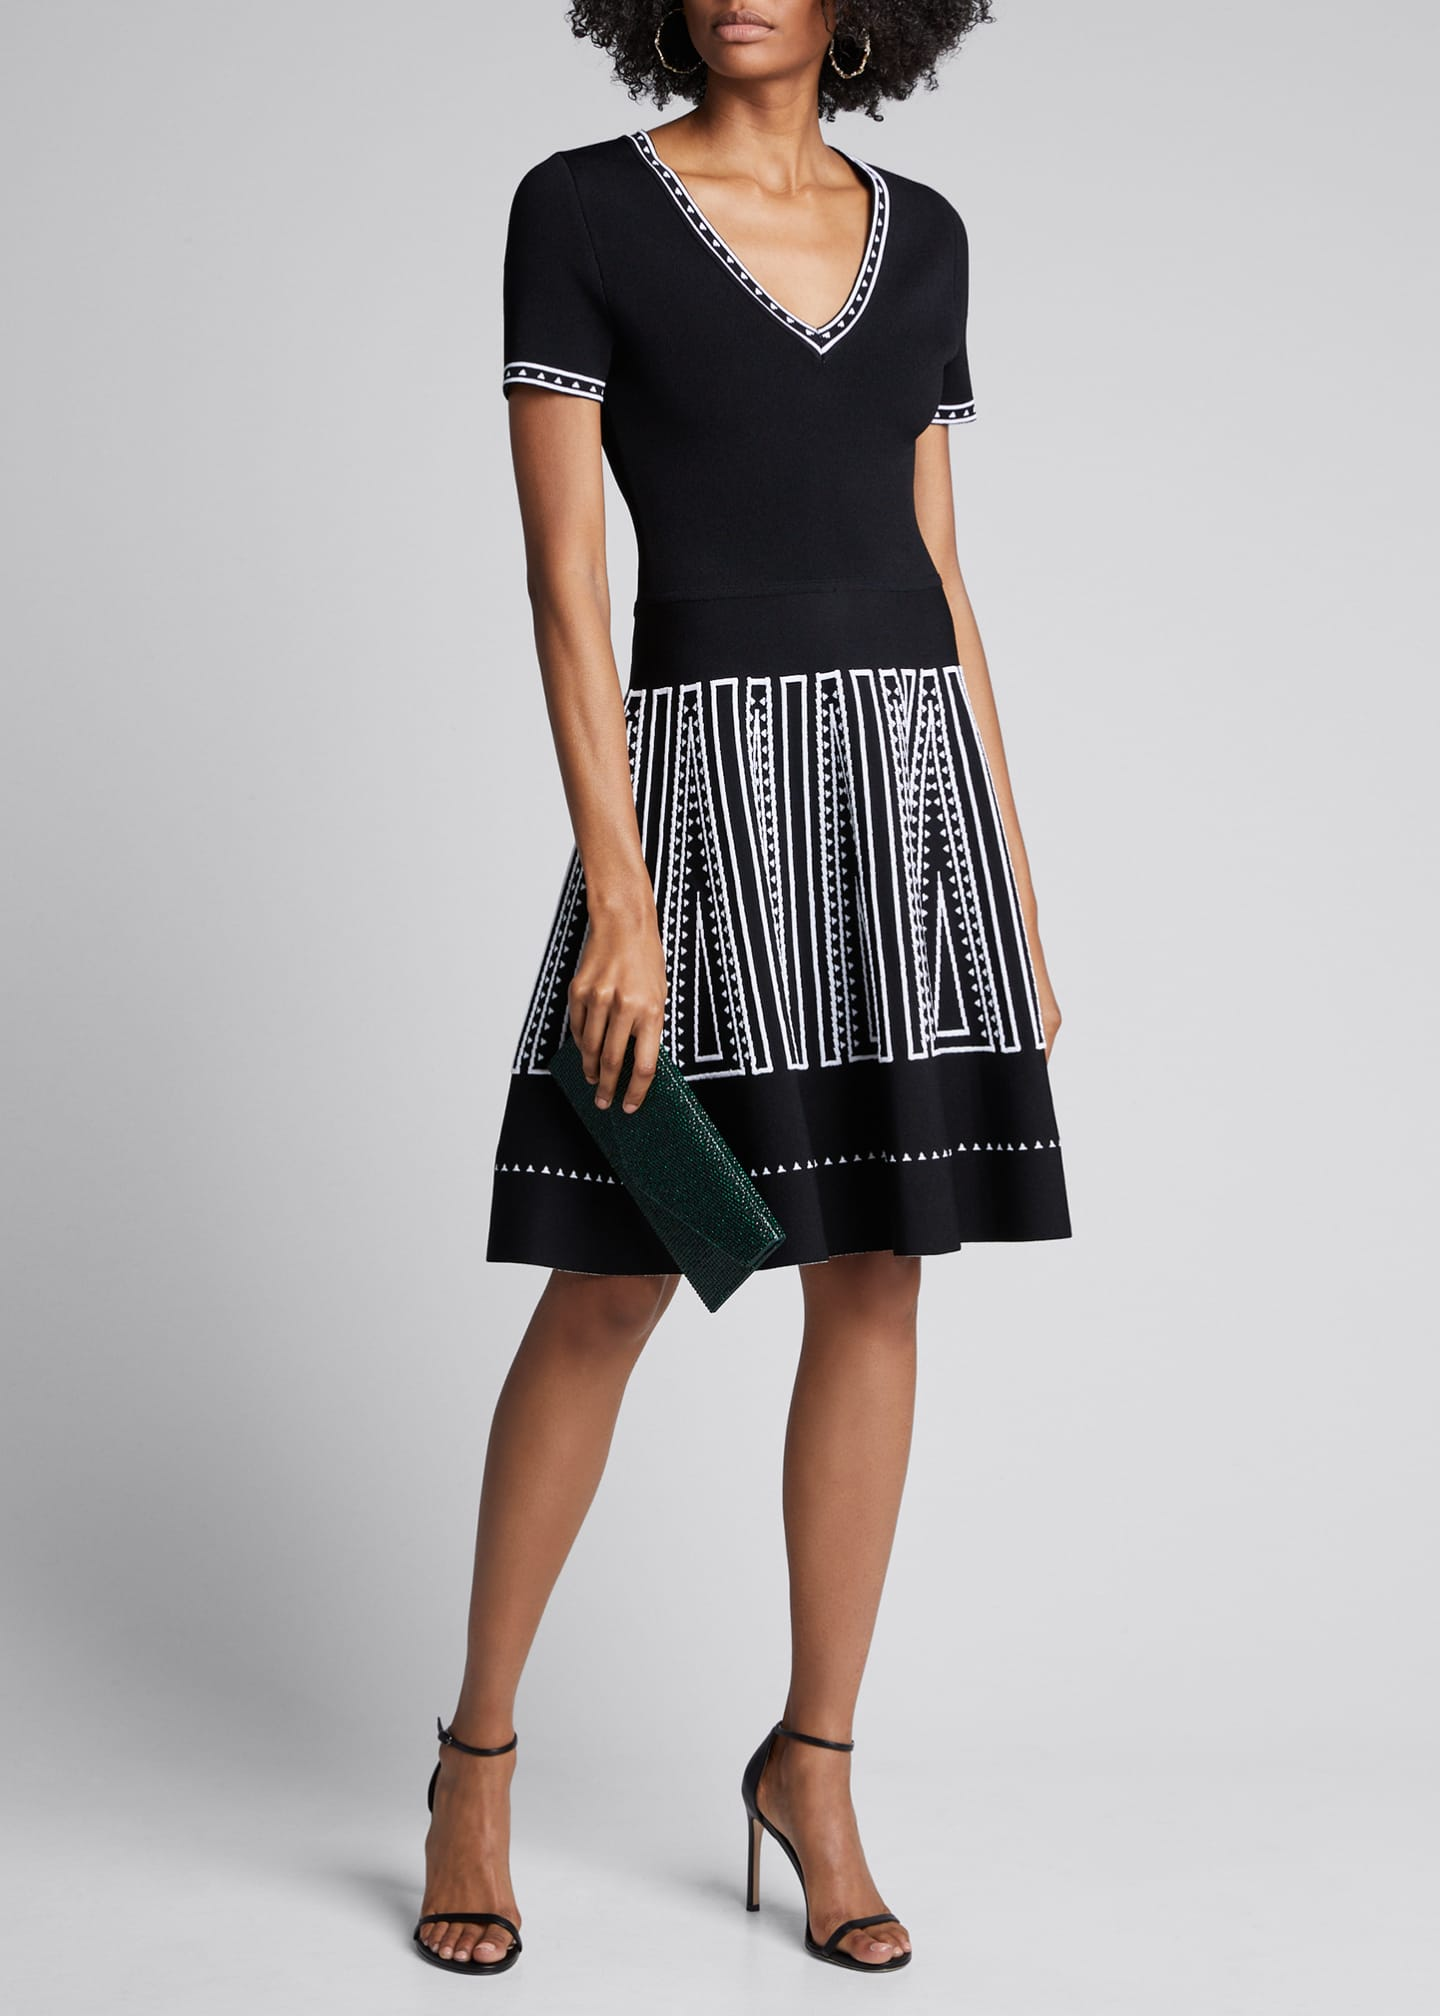 Carolina Herrera Geometric-Embroidered Knit Fit-&-Flare Dress